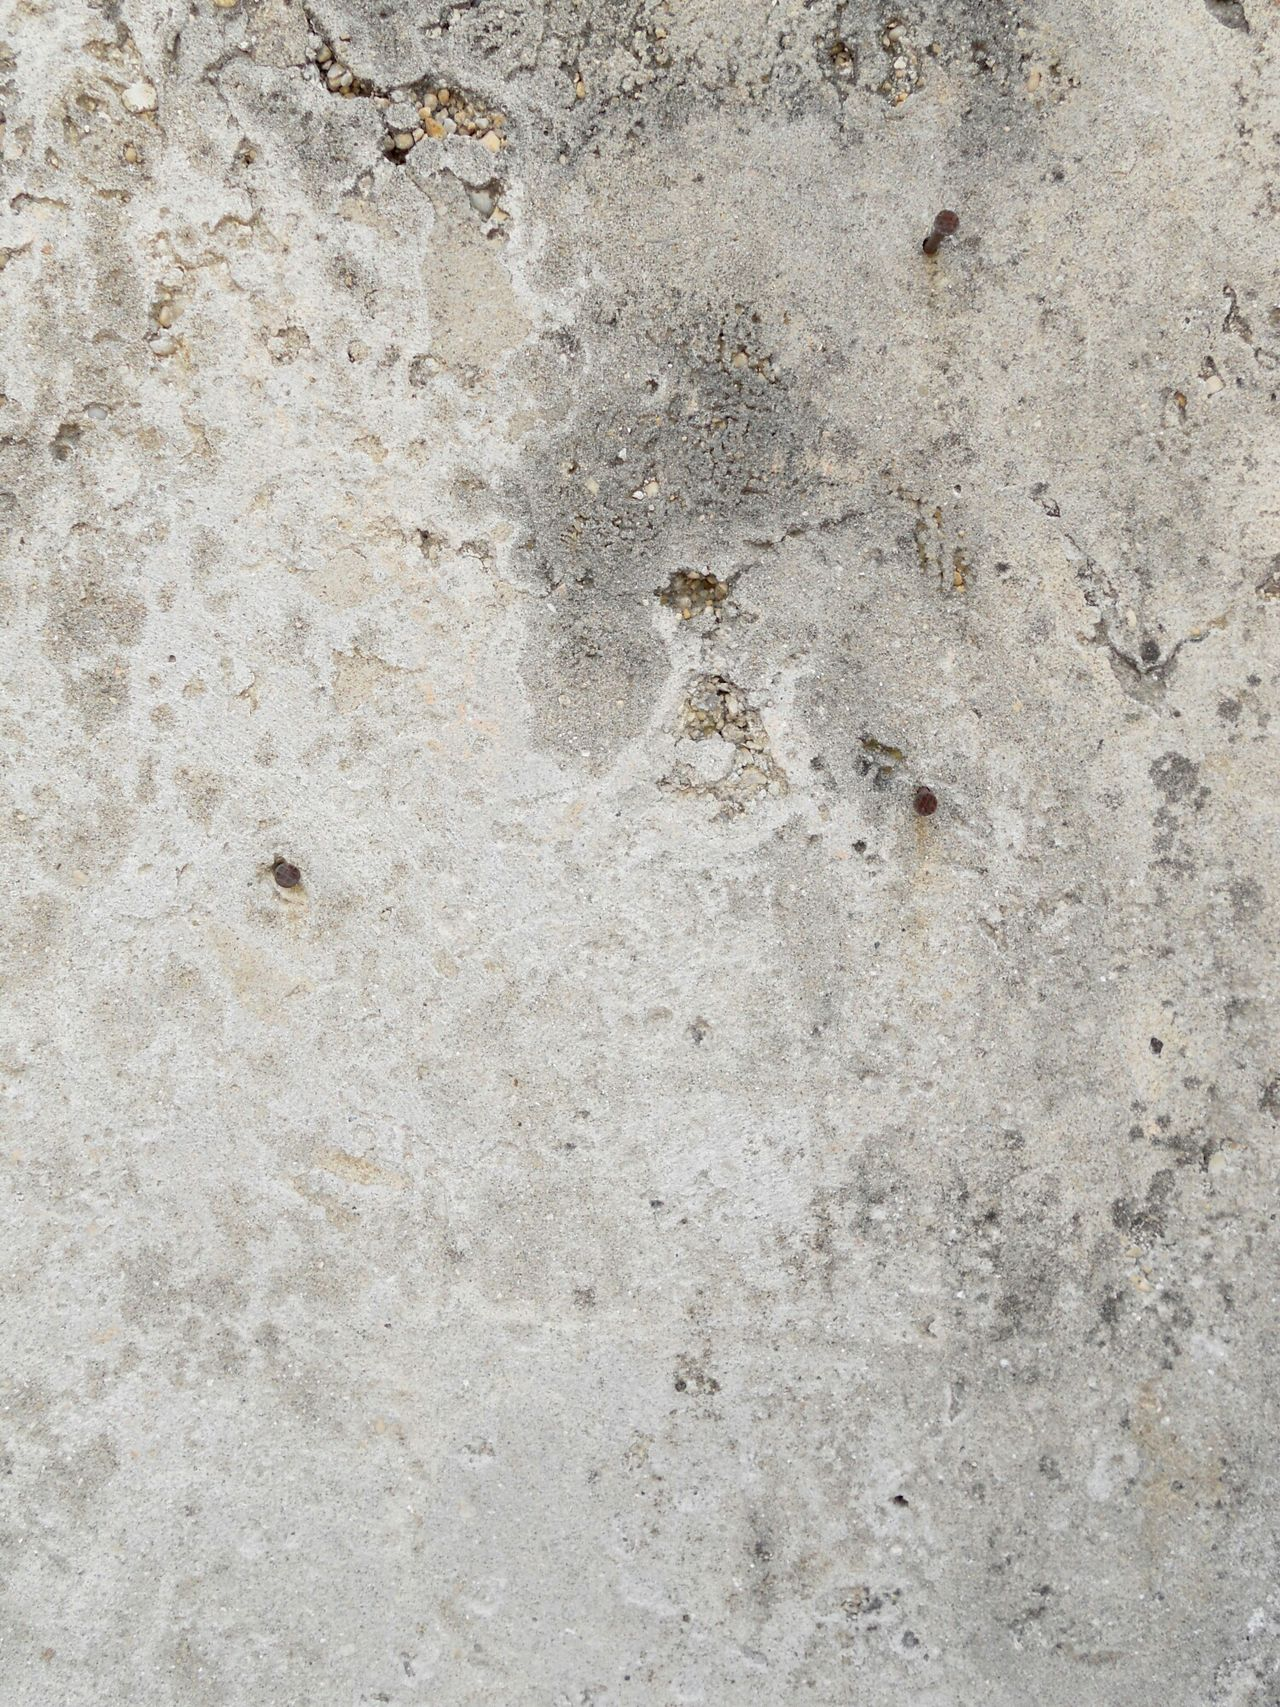 Textures And Surfaces Background ArchiTexture Concrete Wall Gray Nails On Concrete Wall Cracked Wall Old Wall Weathered Wall Italy EyeEm Bestsellers